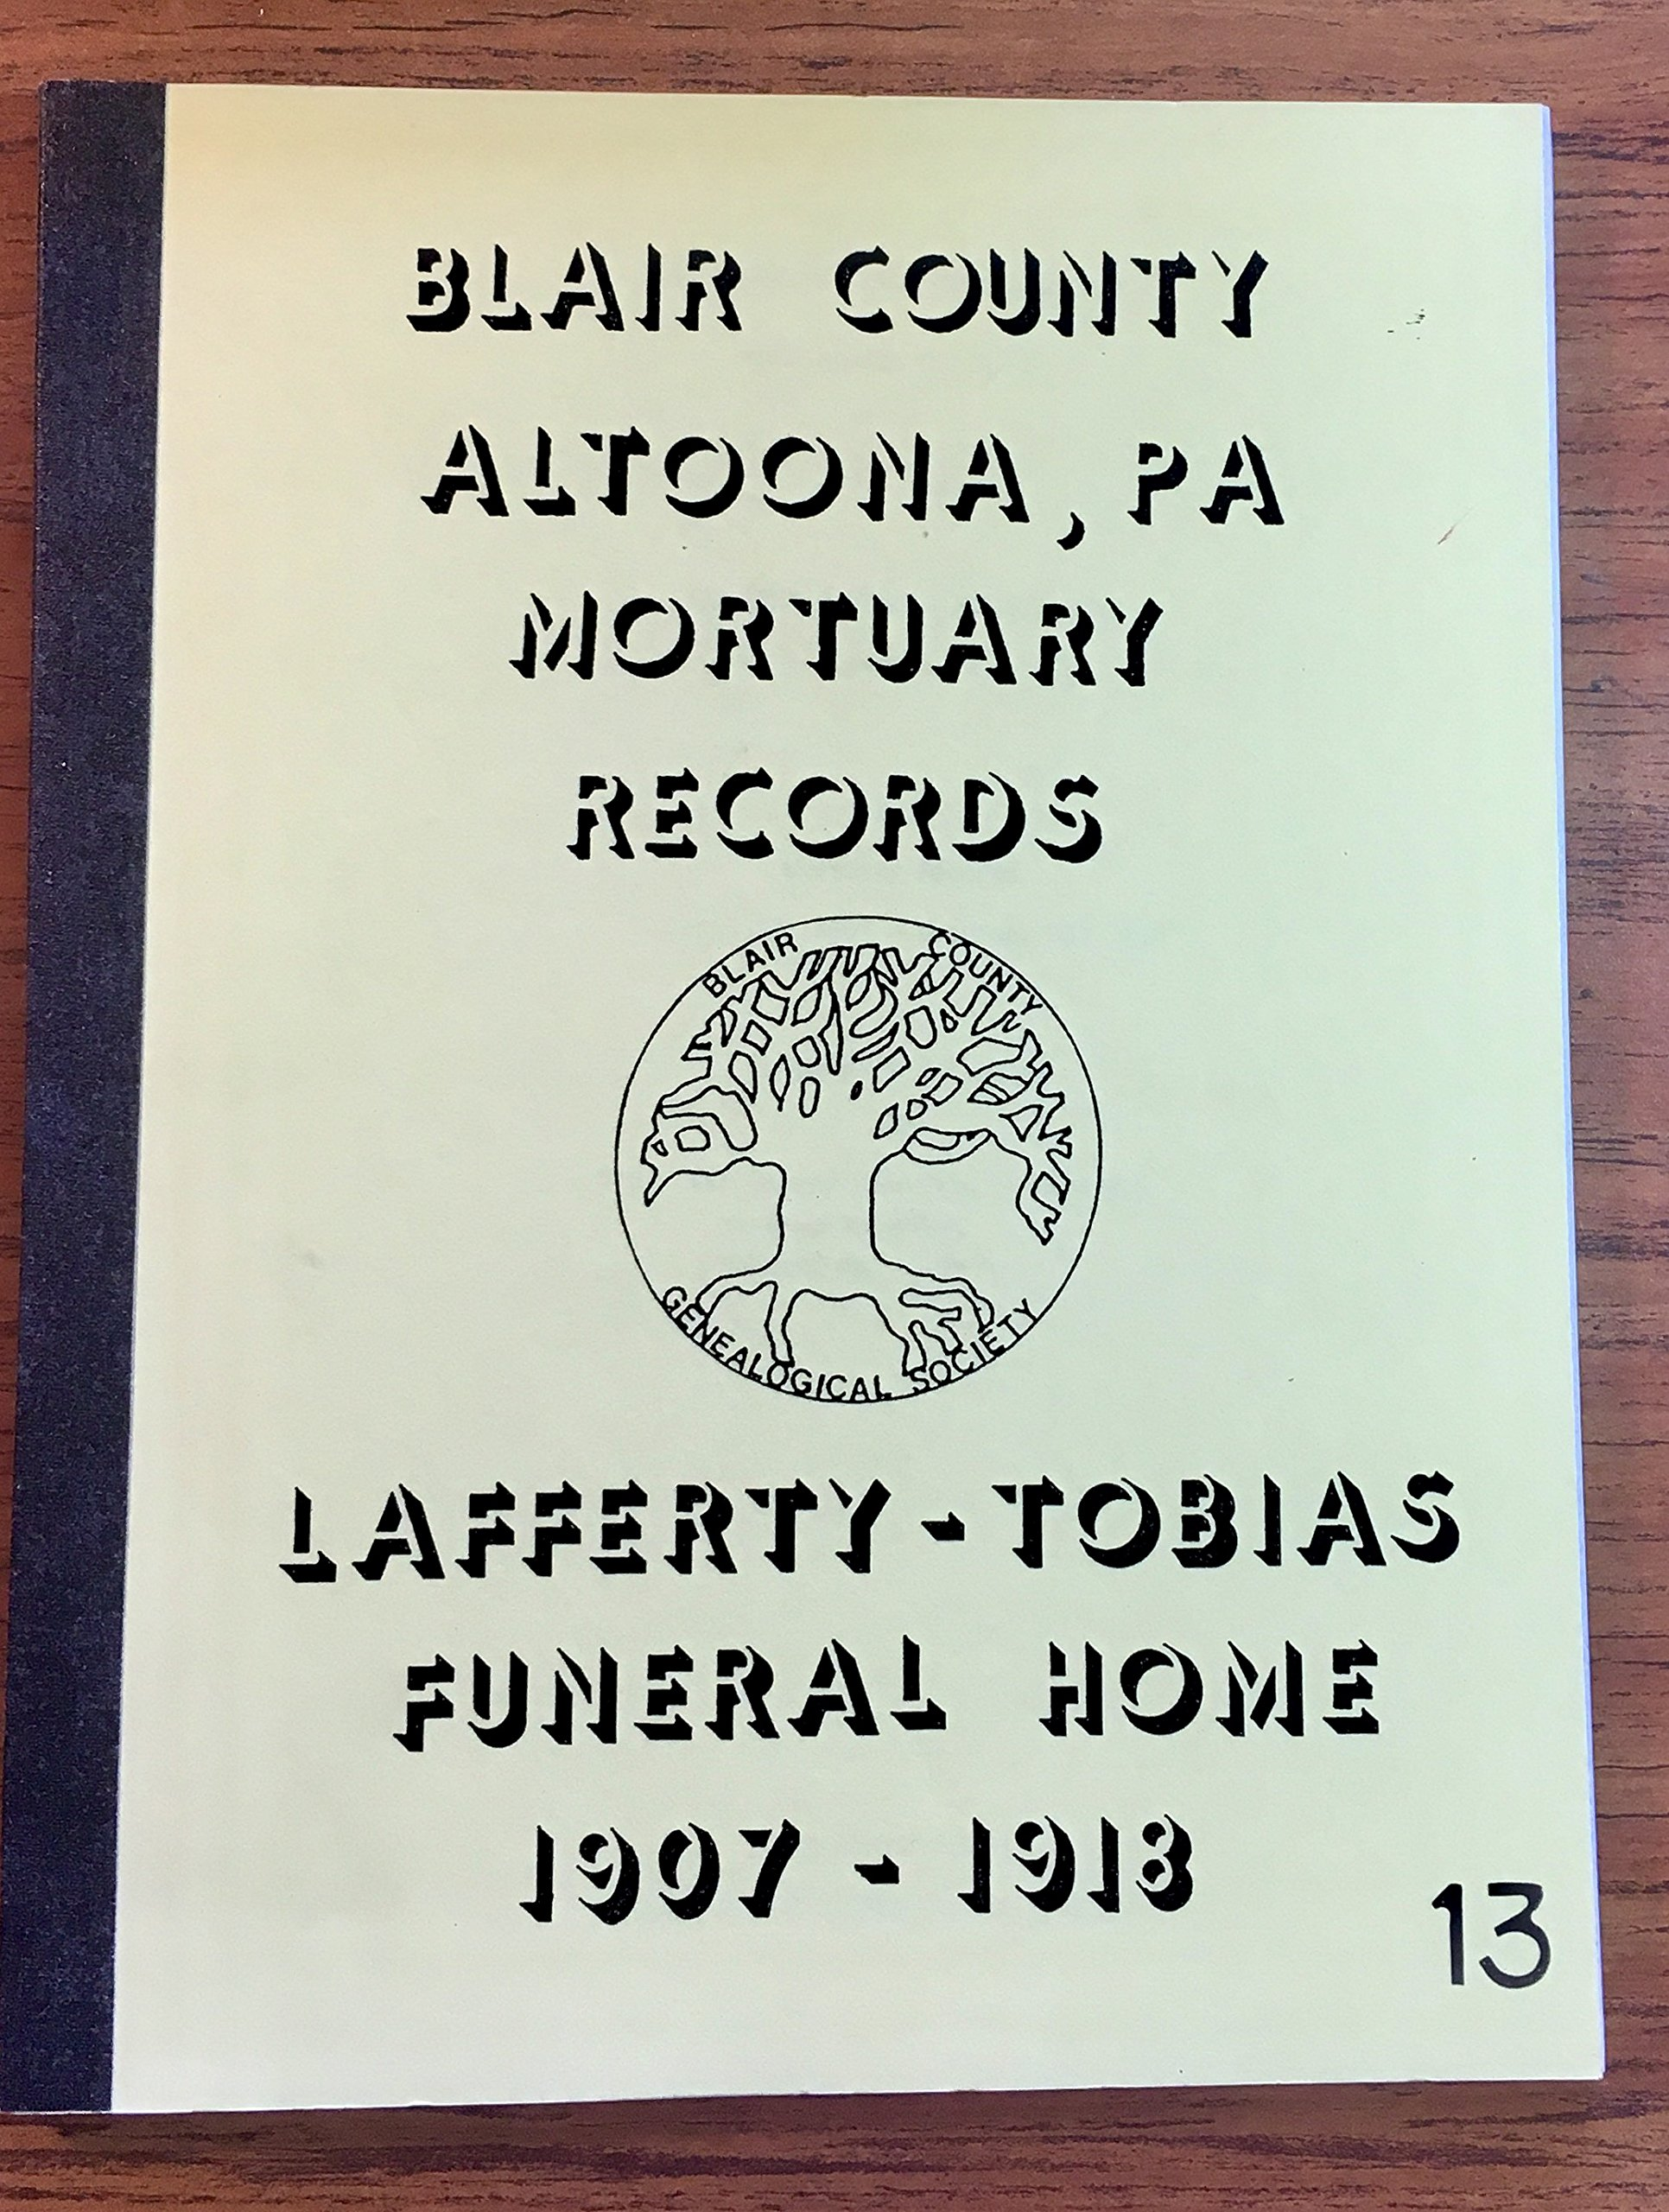 Blair County Altoona Pa Mortuary Records Lafferty Tobias Funeral